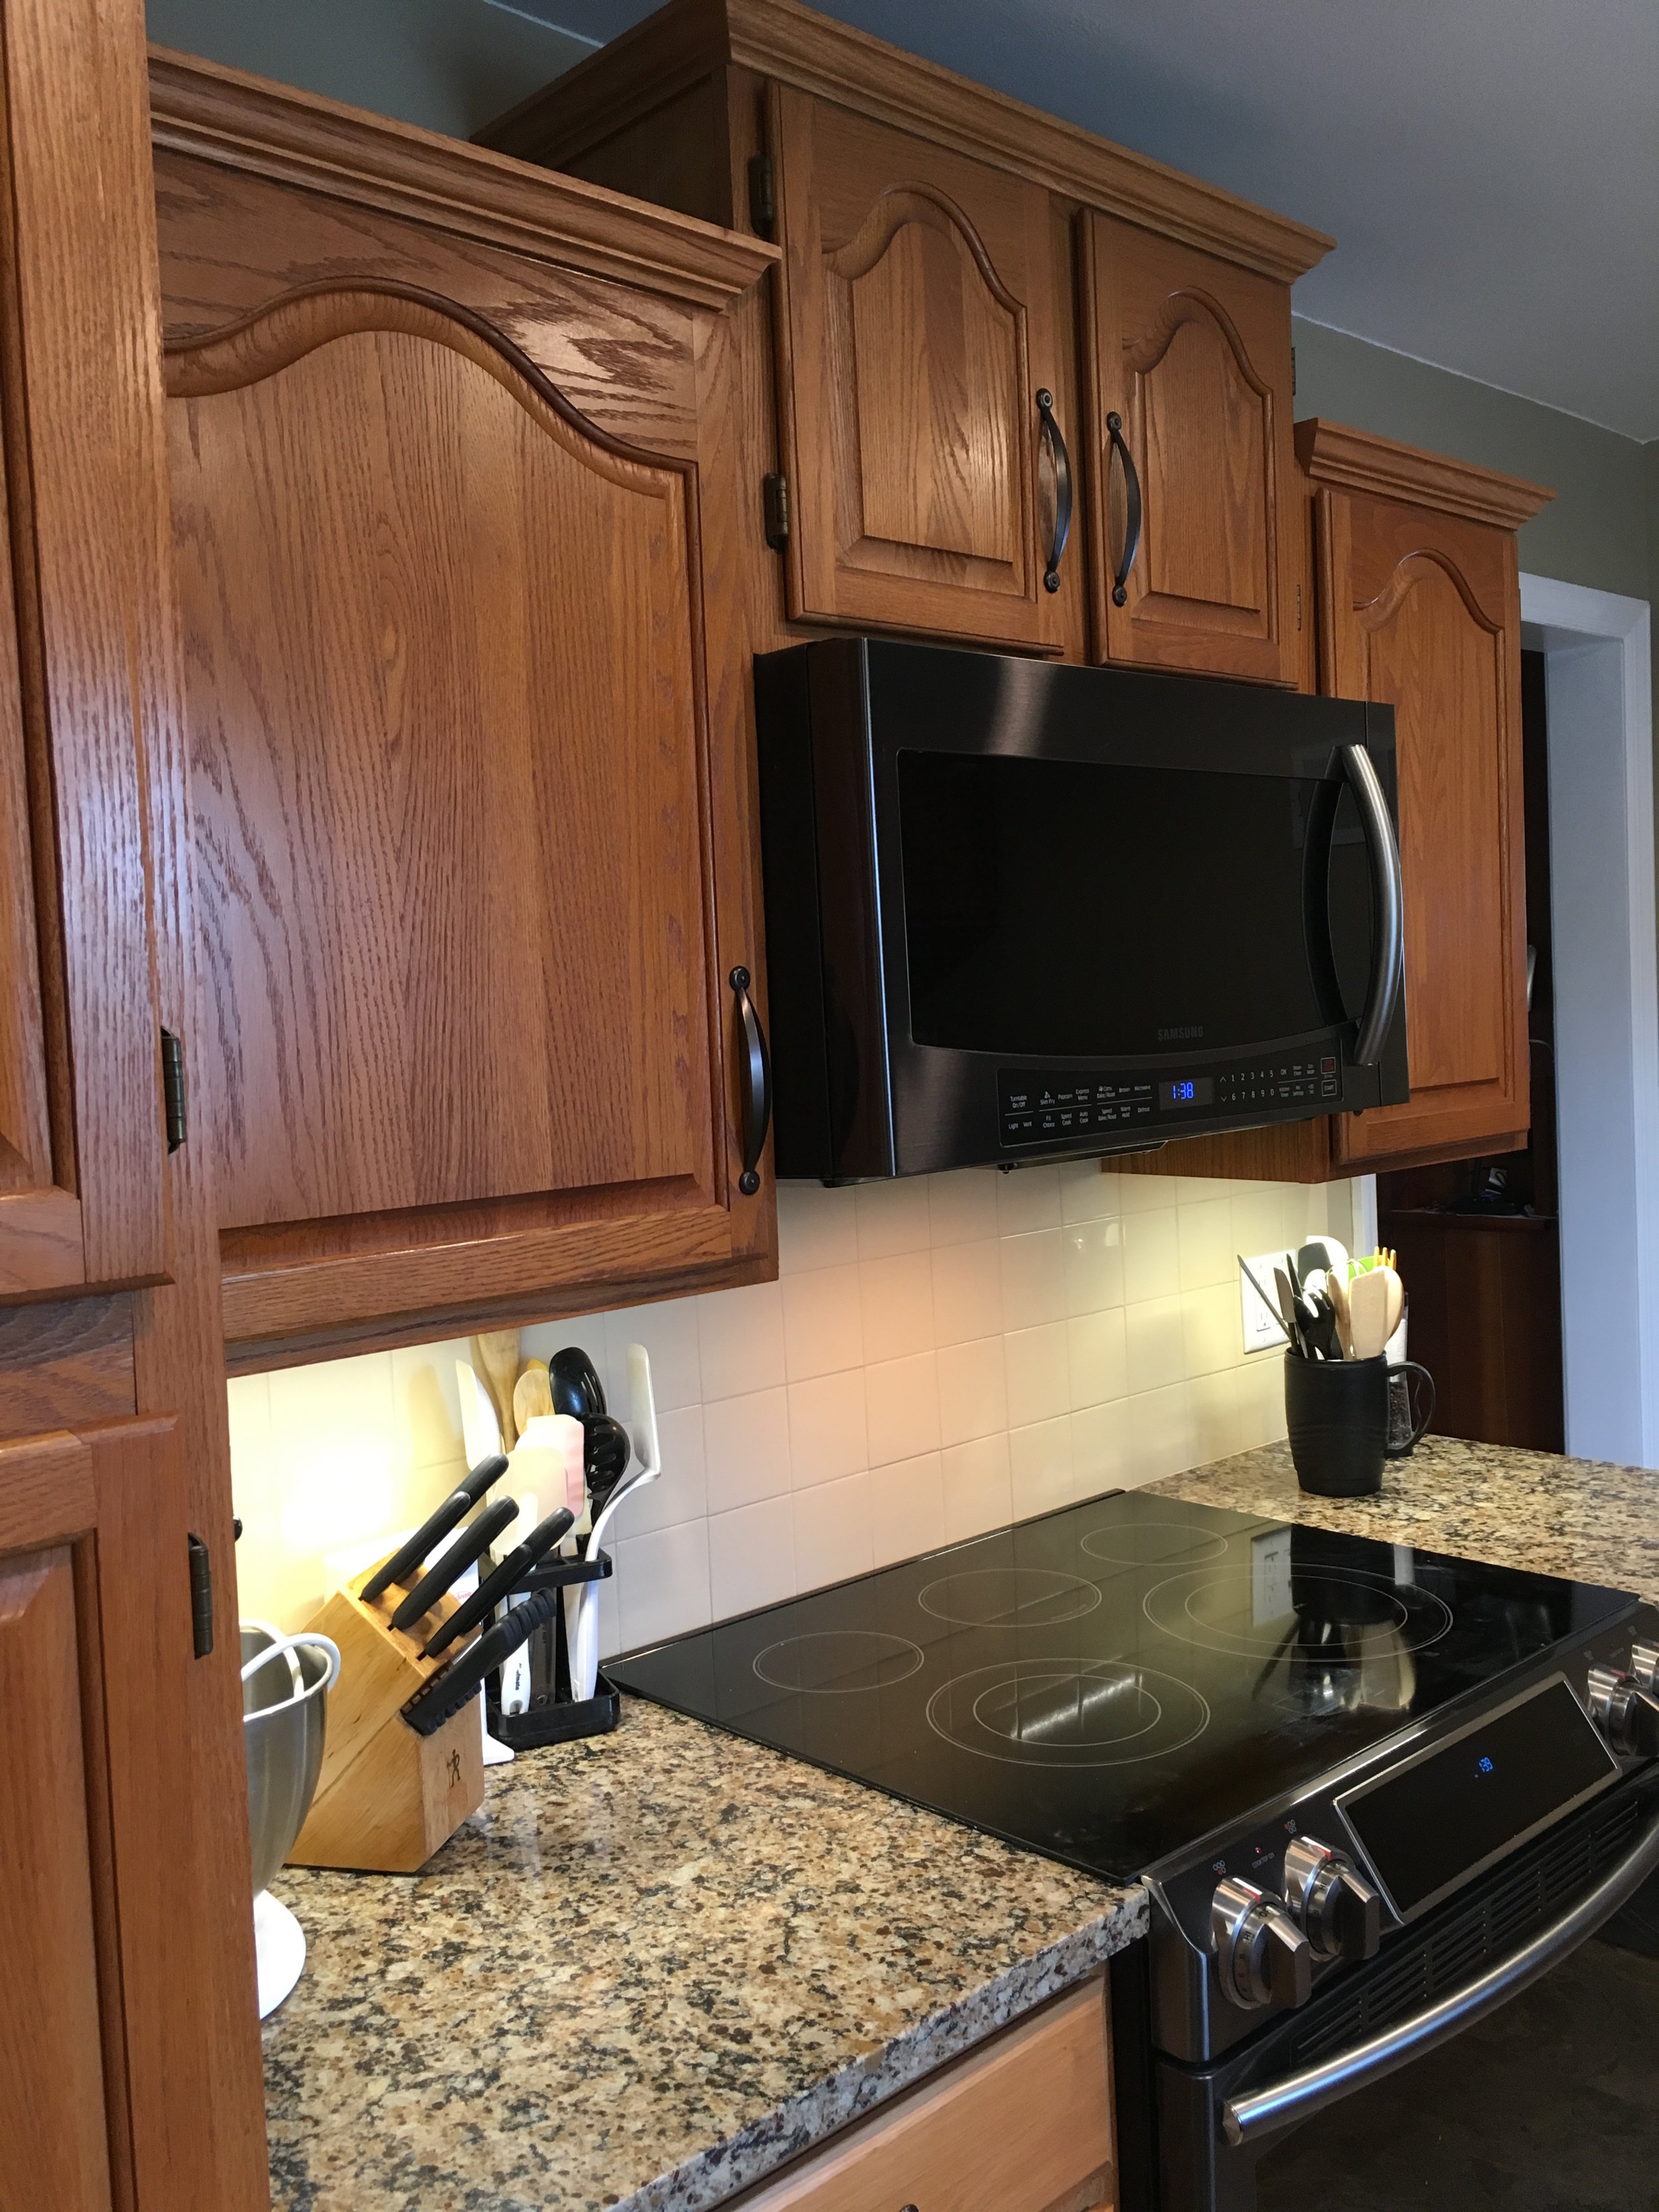 Lower cabinets for easier accessibility